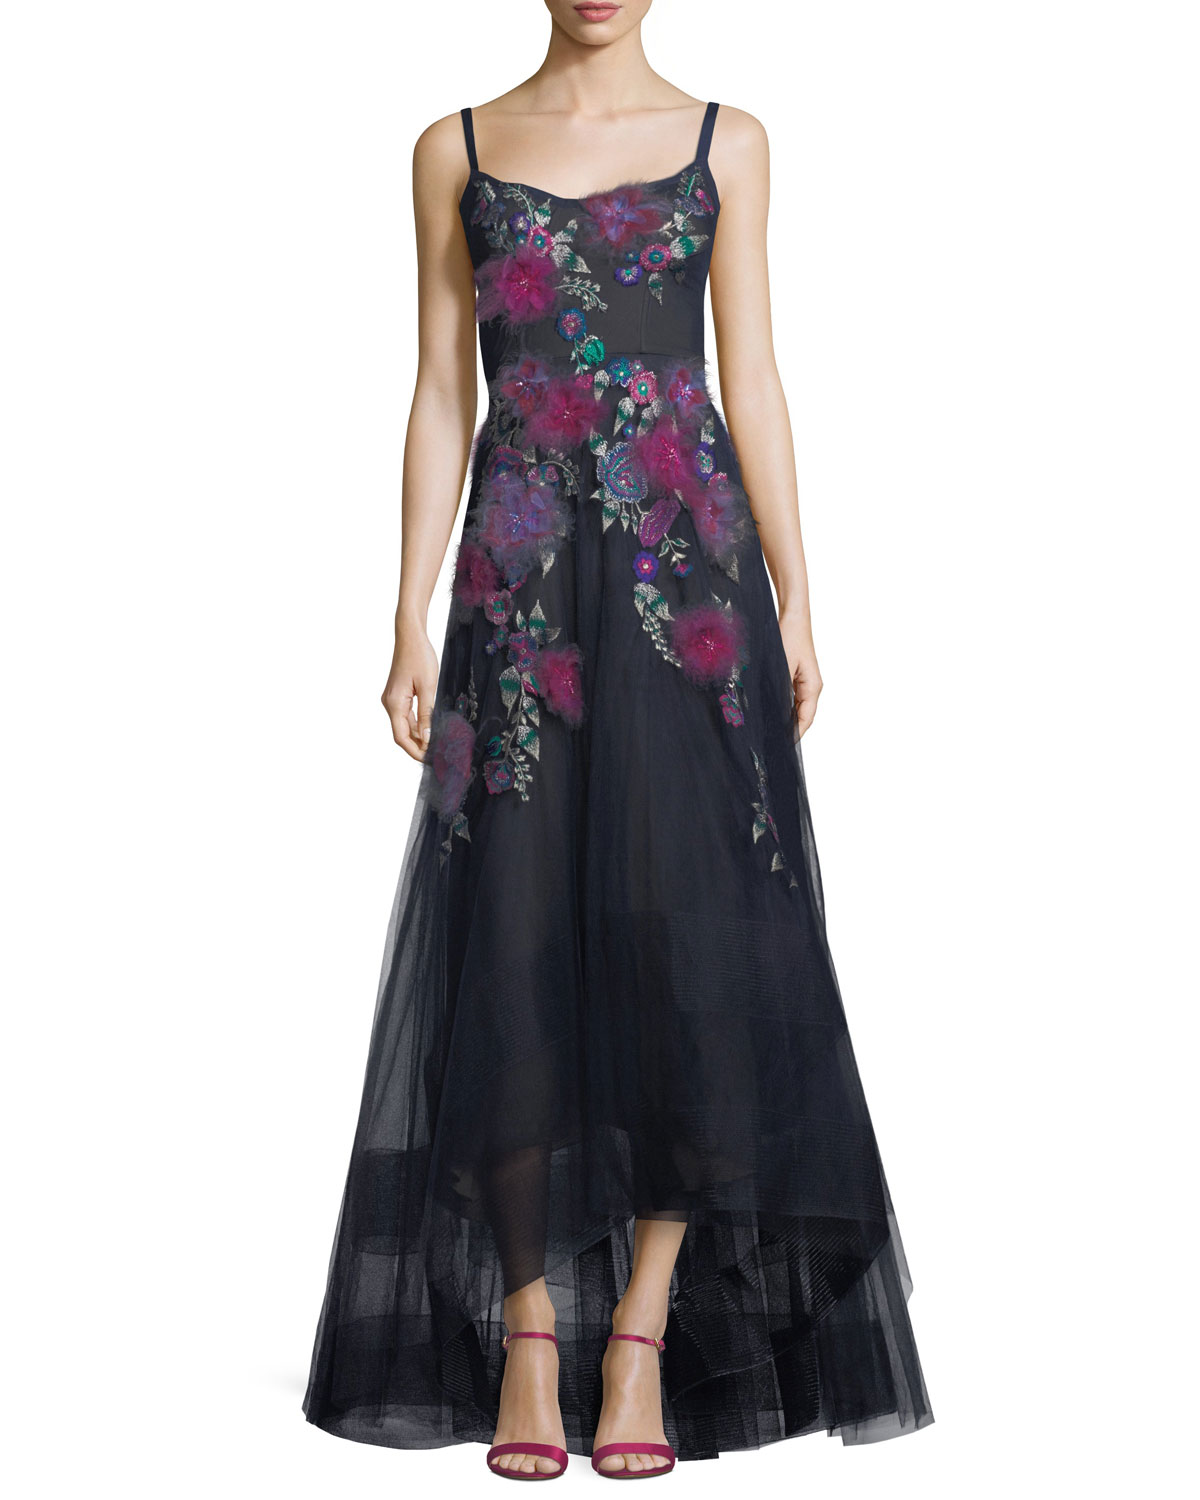 Marchesa Notte Sleeveless Corset High-Low Floral Gown | Neiman Marcus